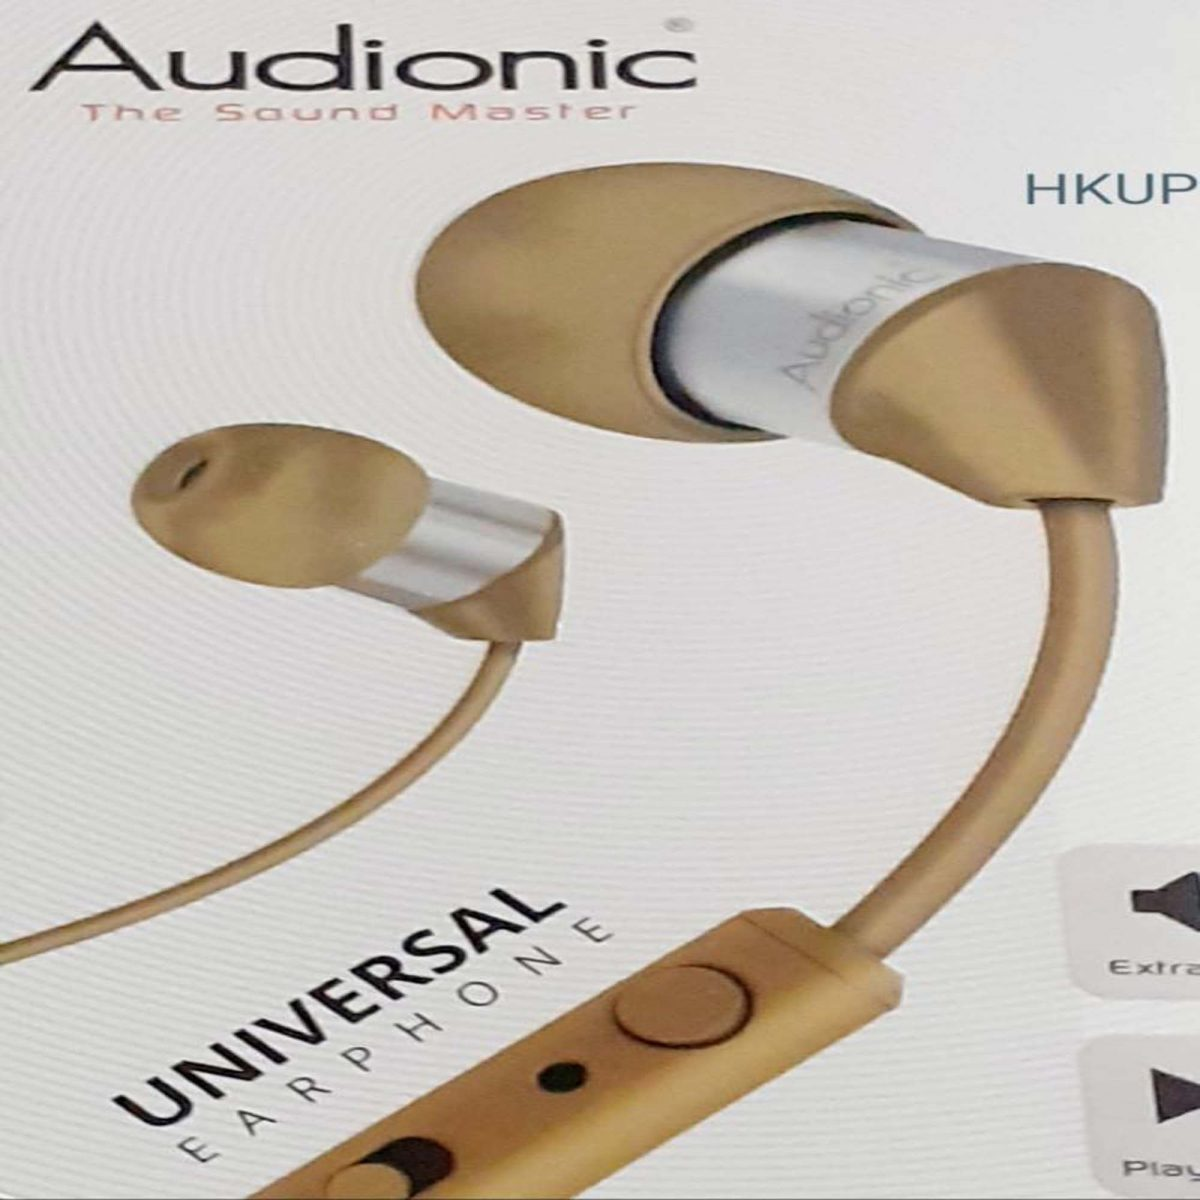 Audionic Brown Universal Earphone With Extra Bass - T-40